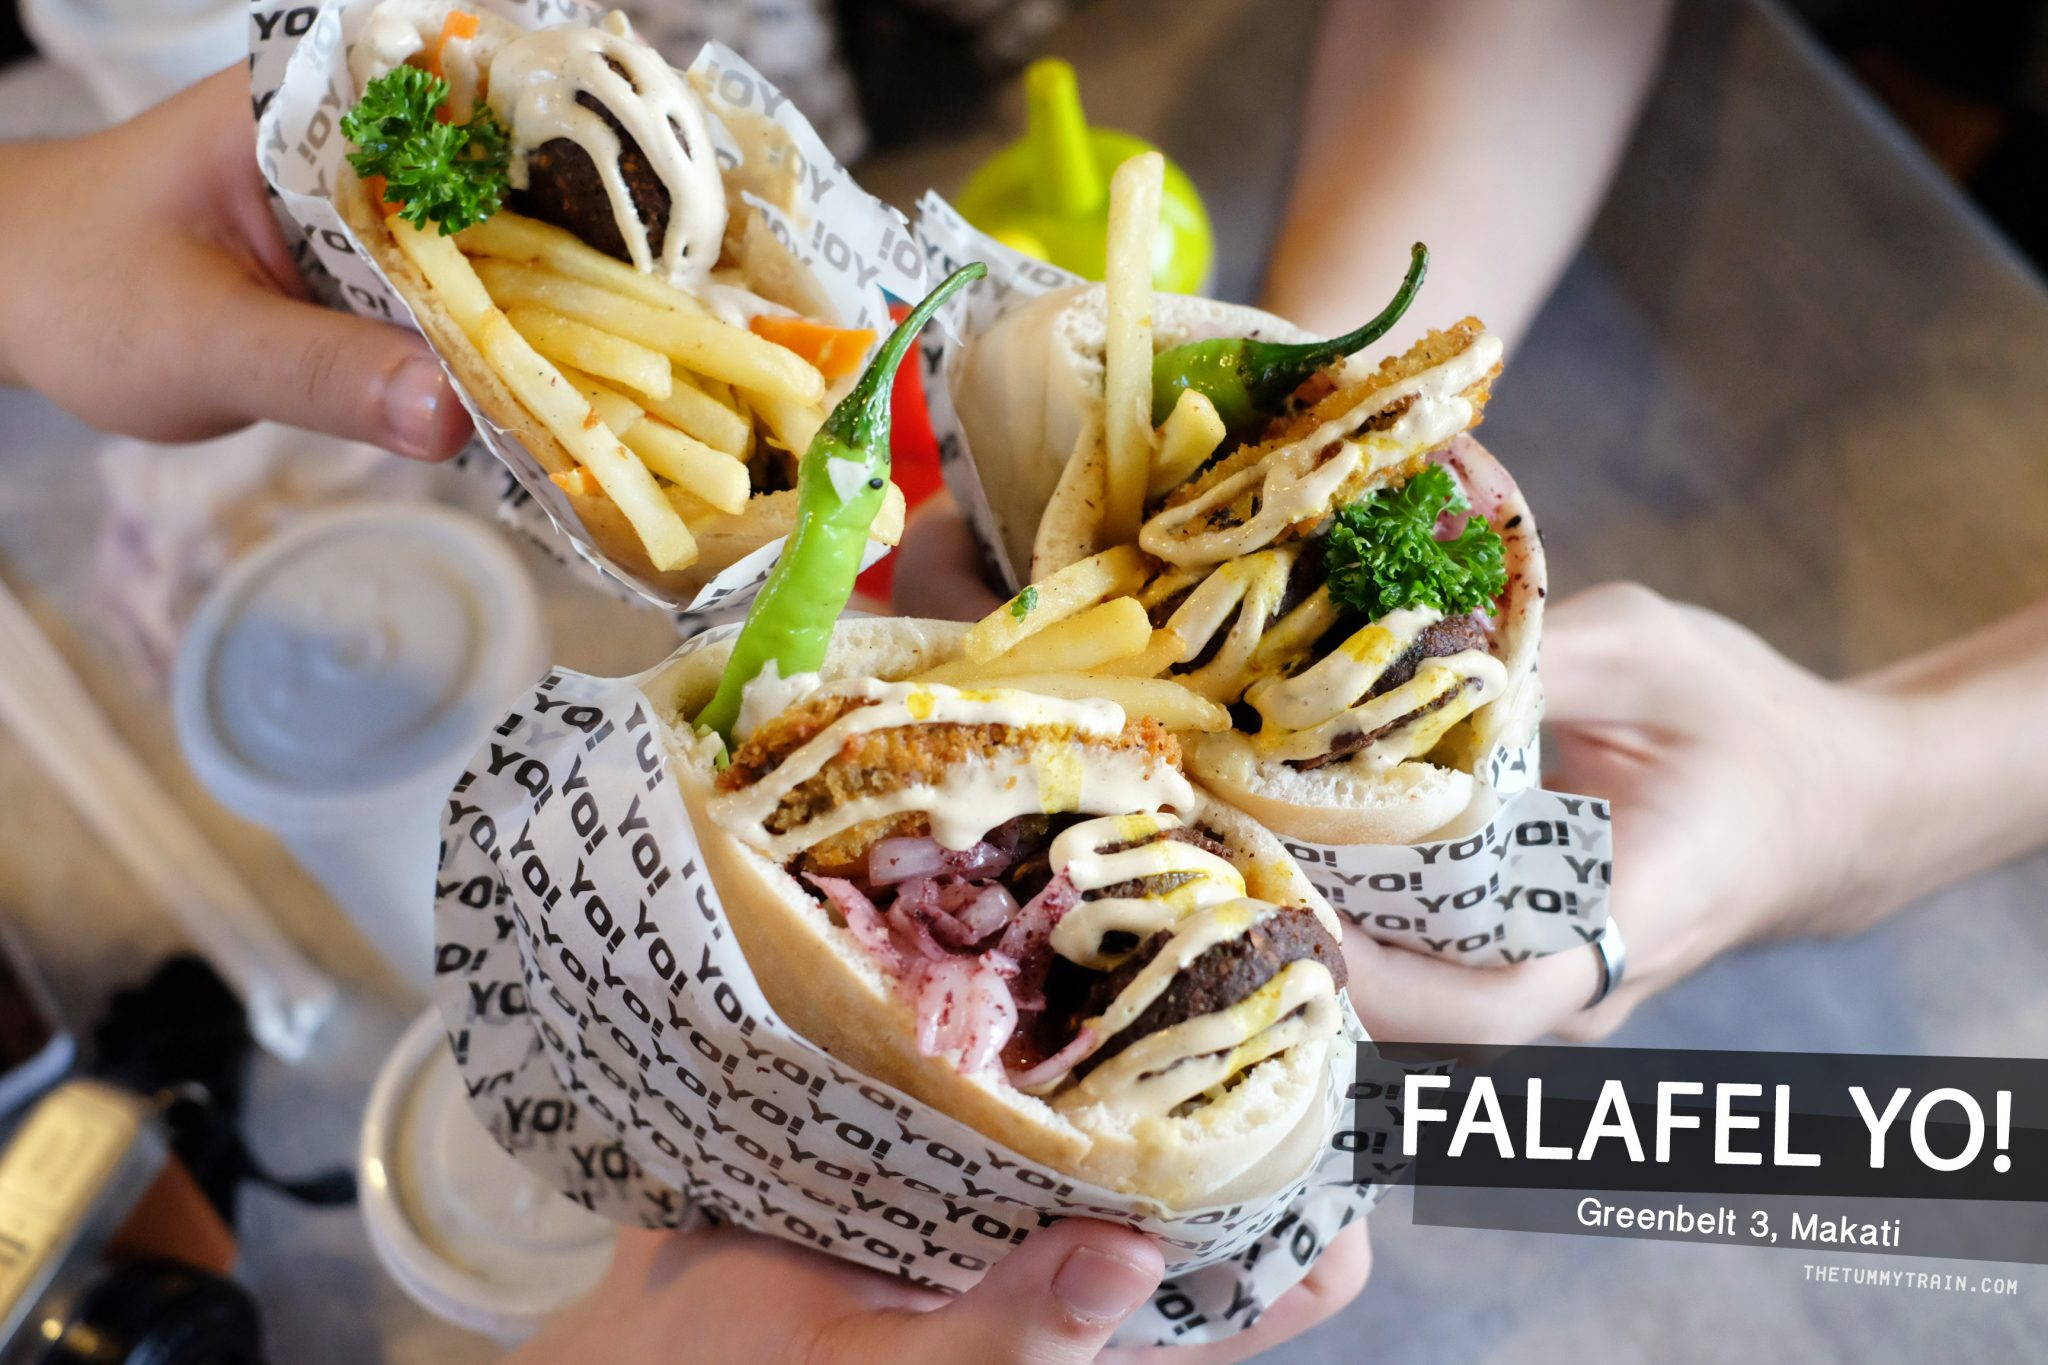 Falafel Yo COVER - Eat or Retreat? Falafel Yo! at Greenbelt 3 Cinema Level